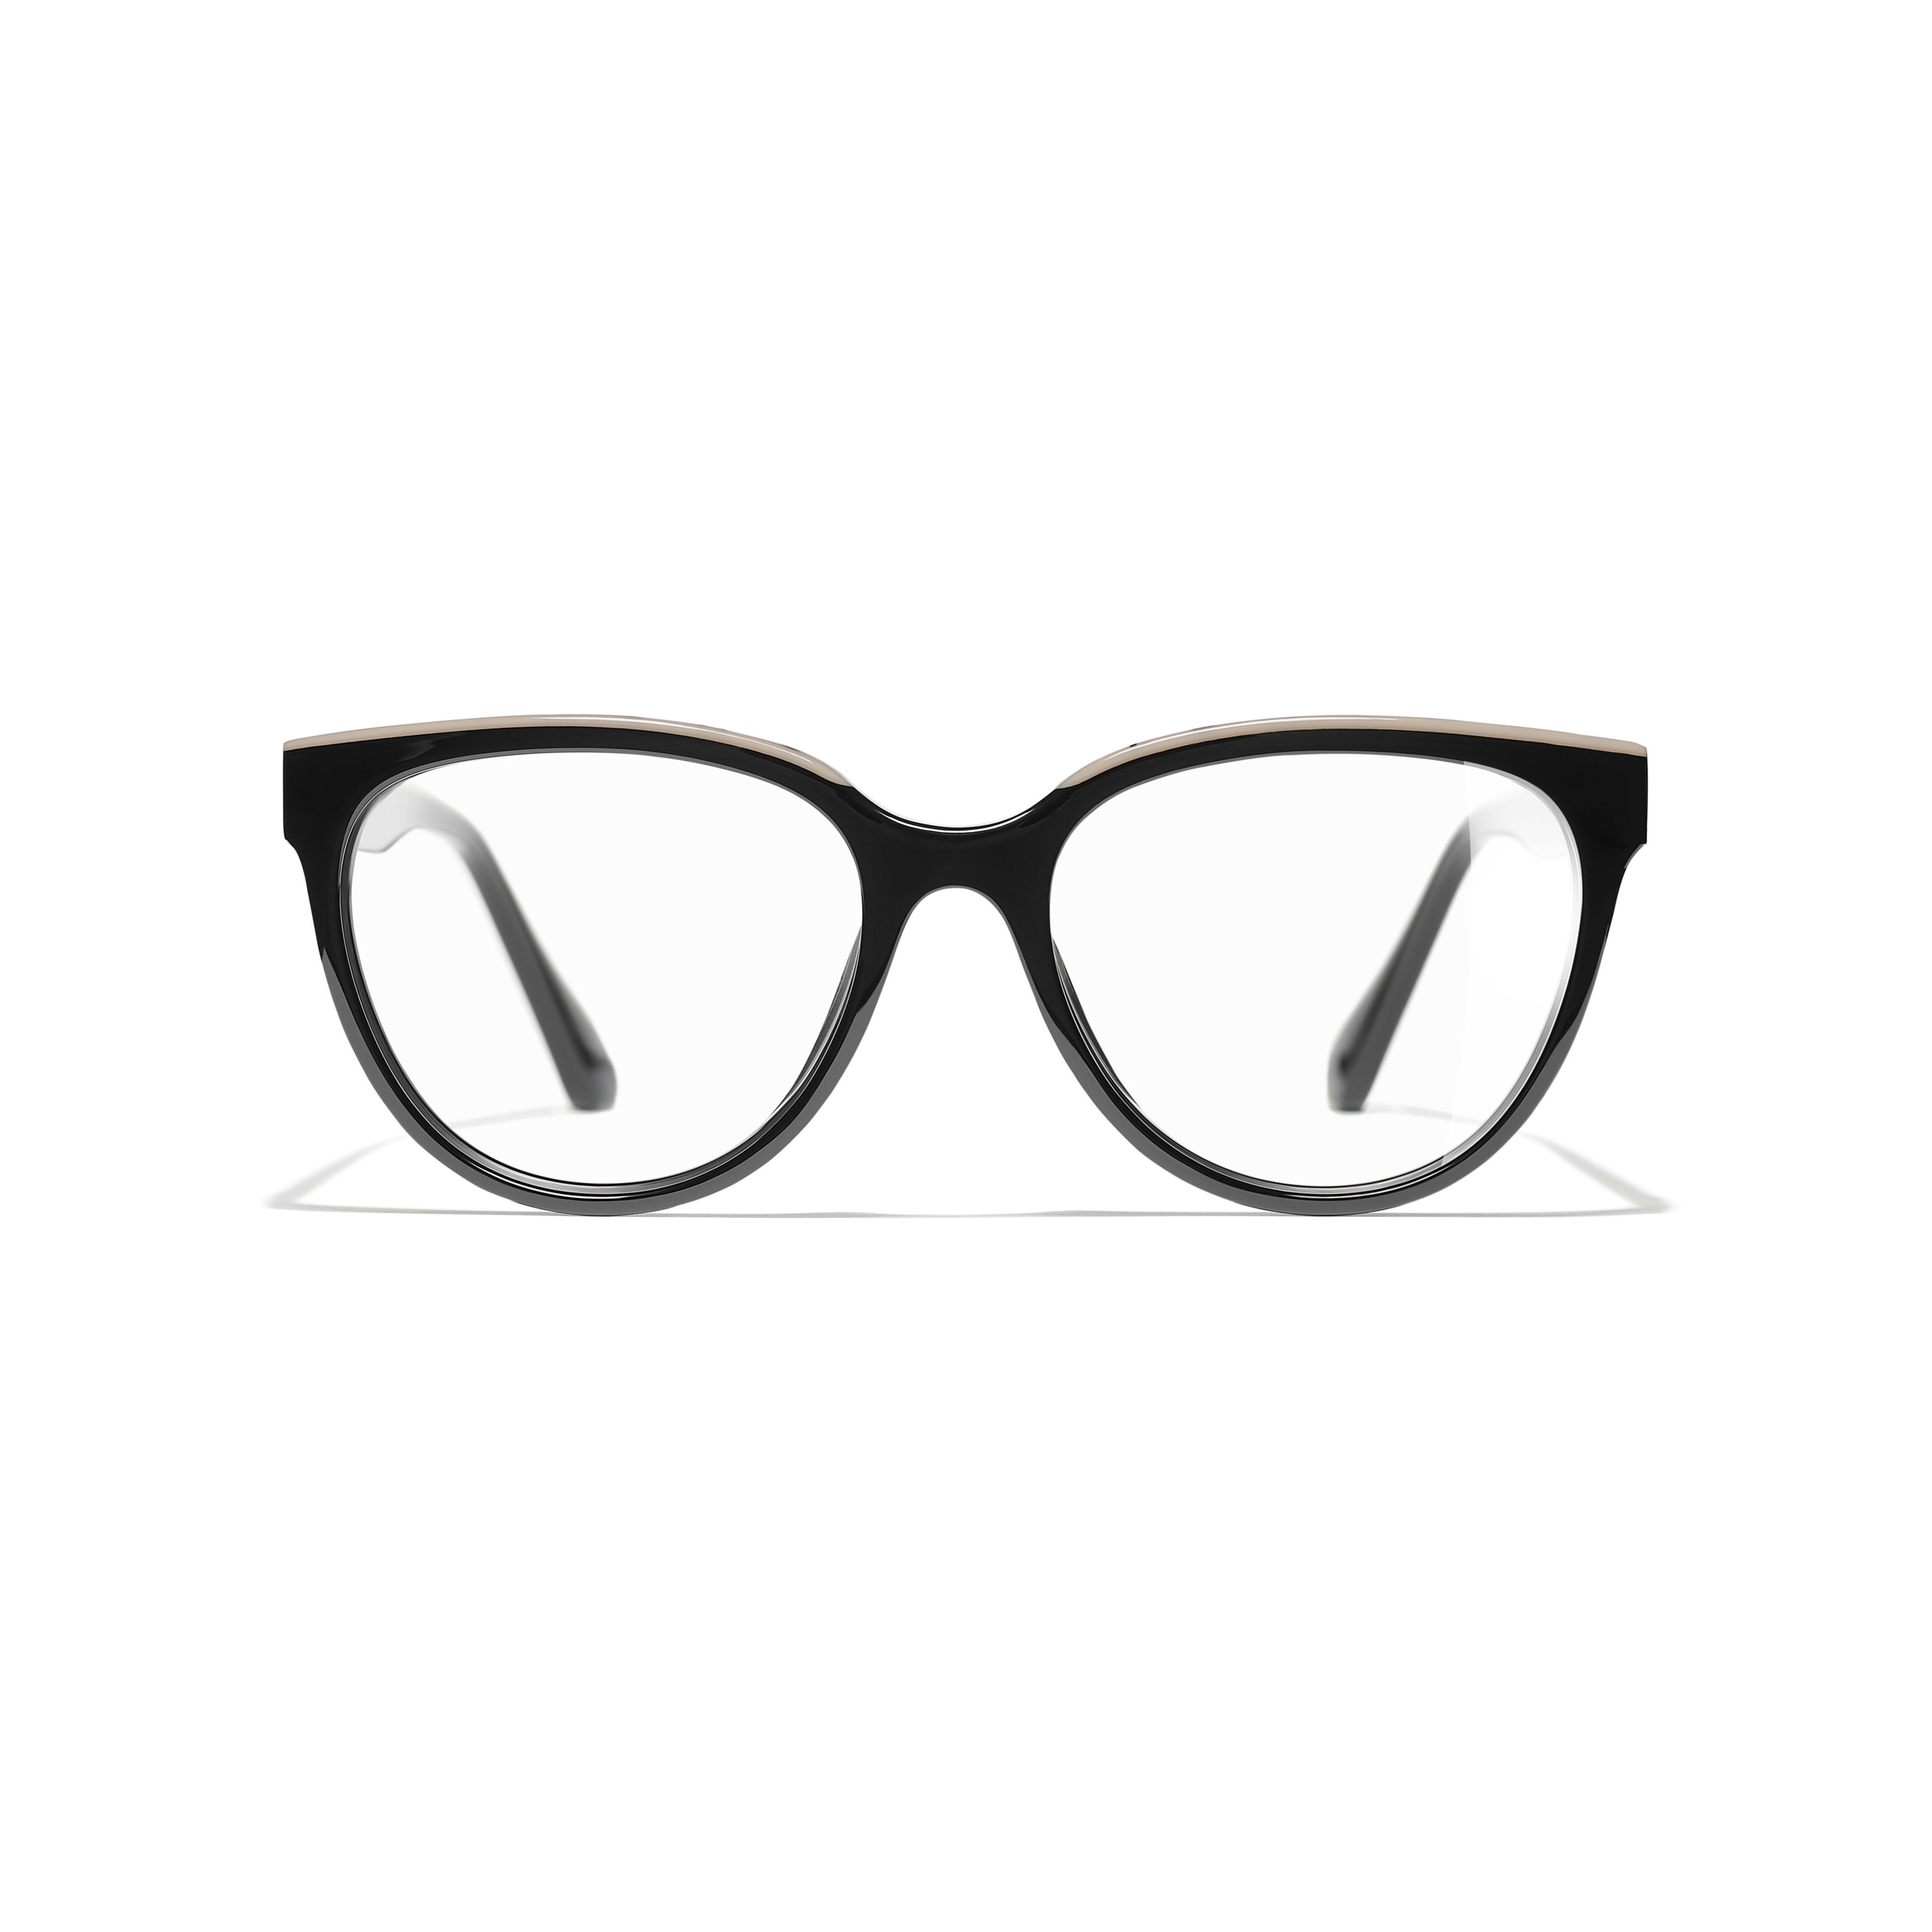 Butterfly Eyeglasses - Black & Beige - Acetate - Alternative view - see full sized version